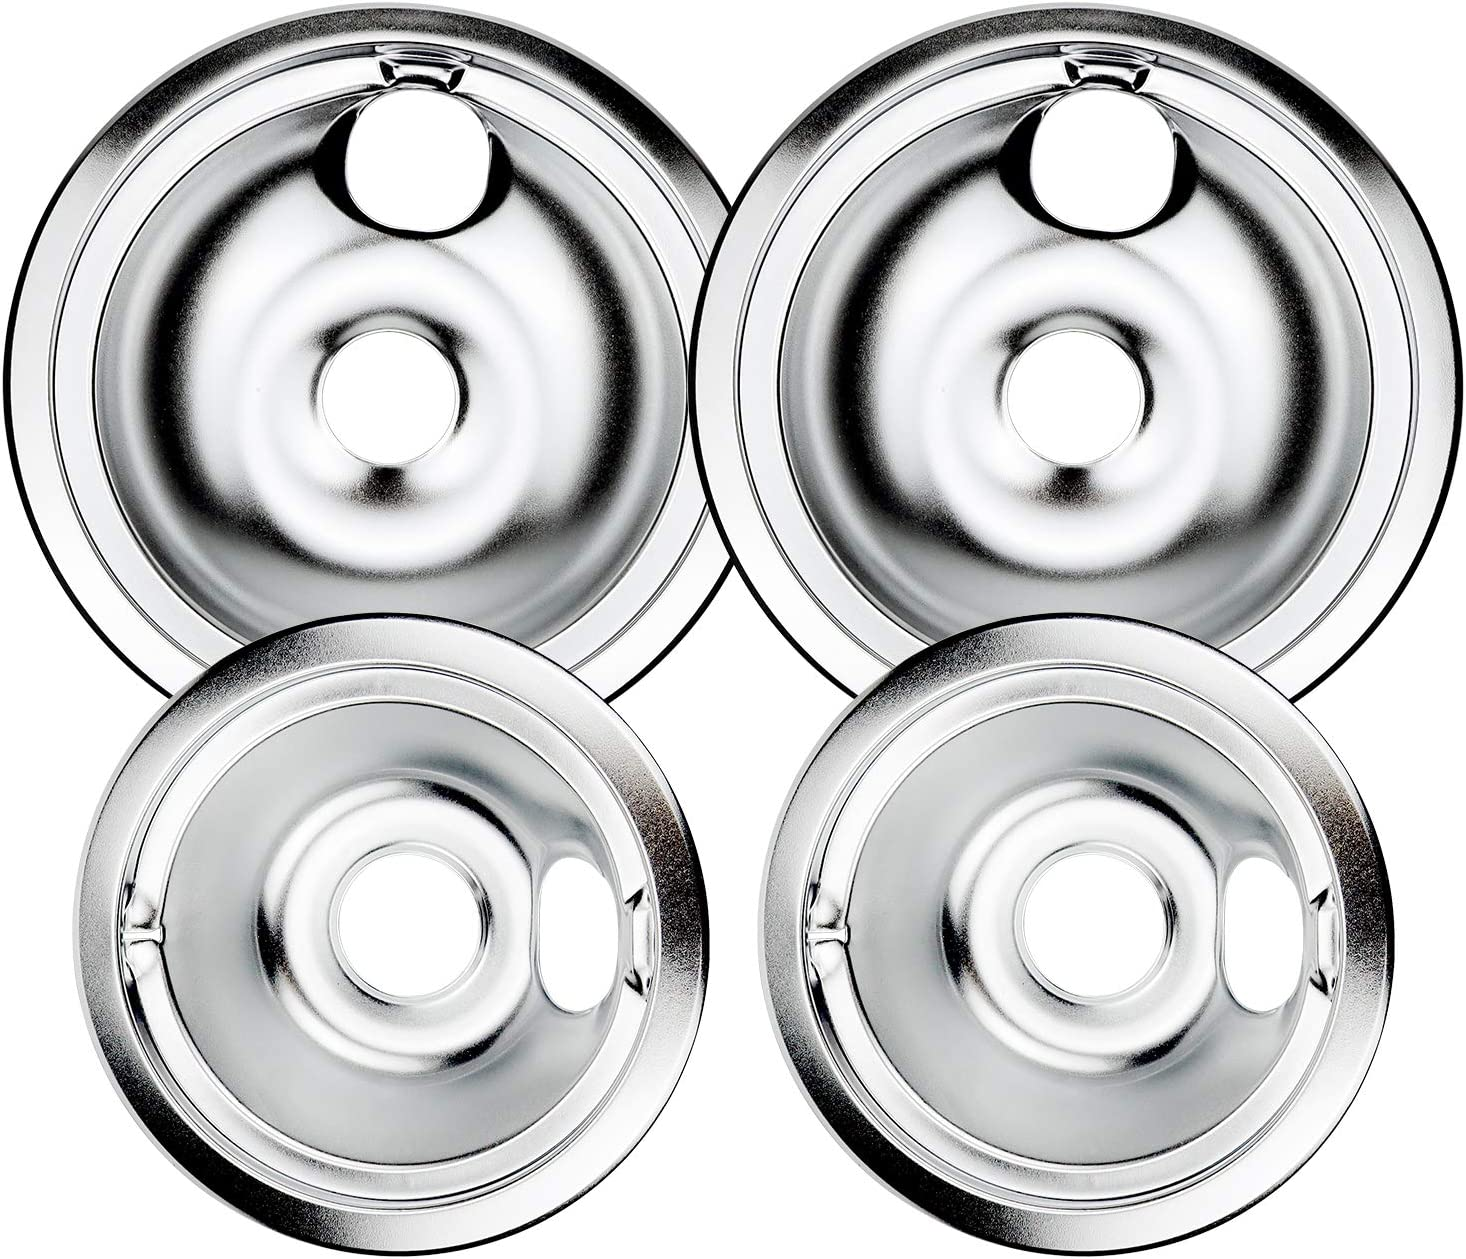 Drip Pans WB31T10010 and Max 81% OFF WB31T10011 Bowls overseas Chrome Pan Burner